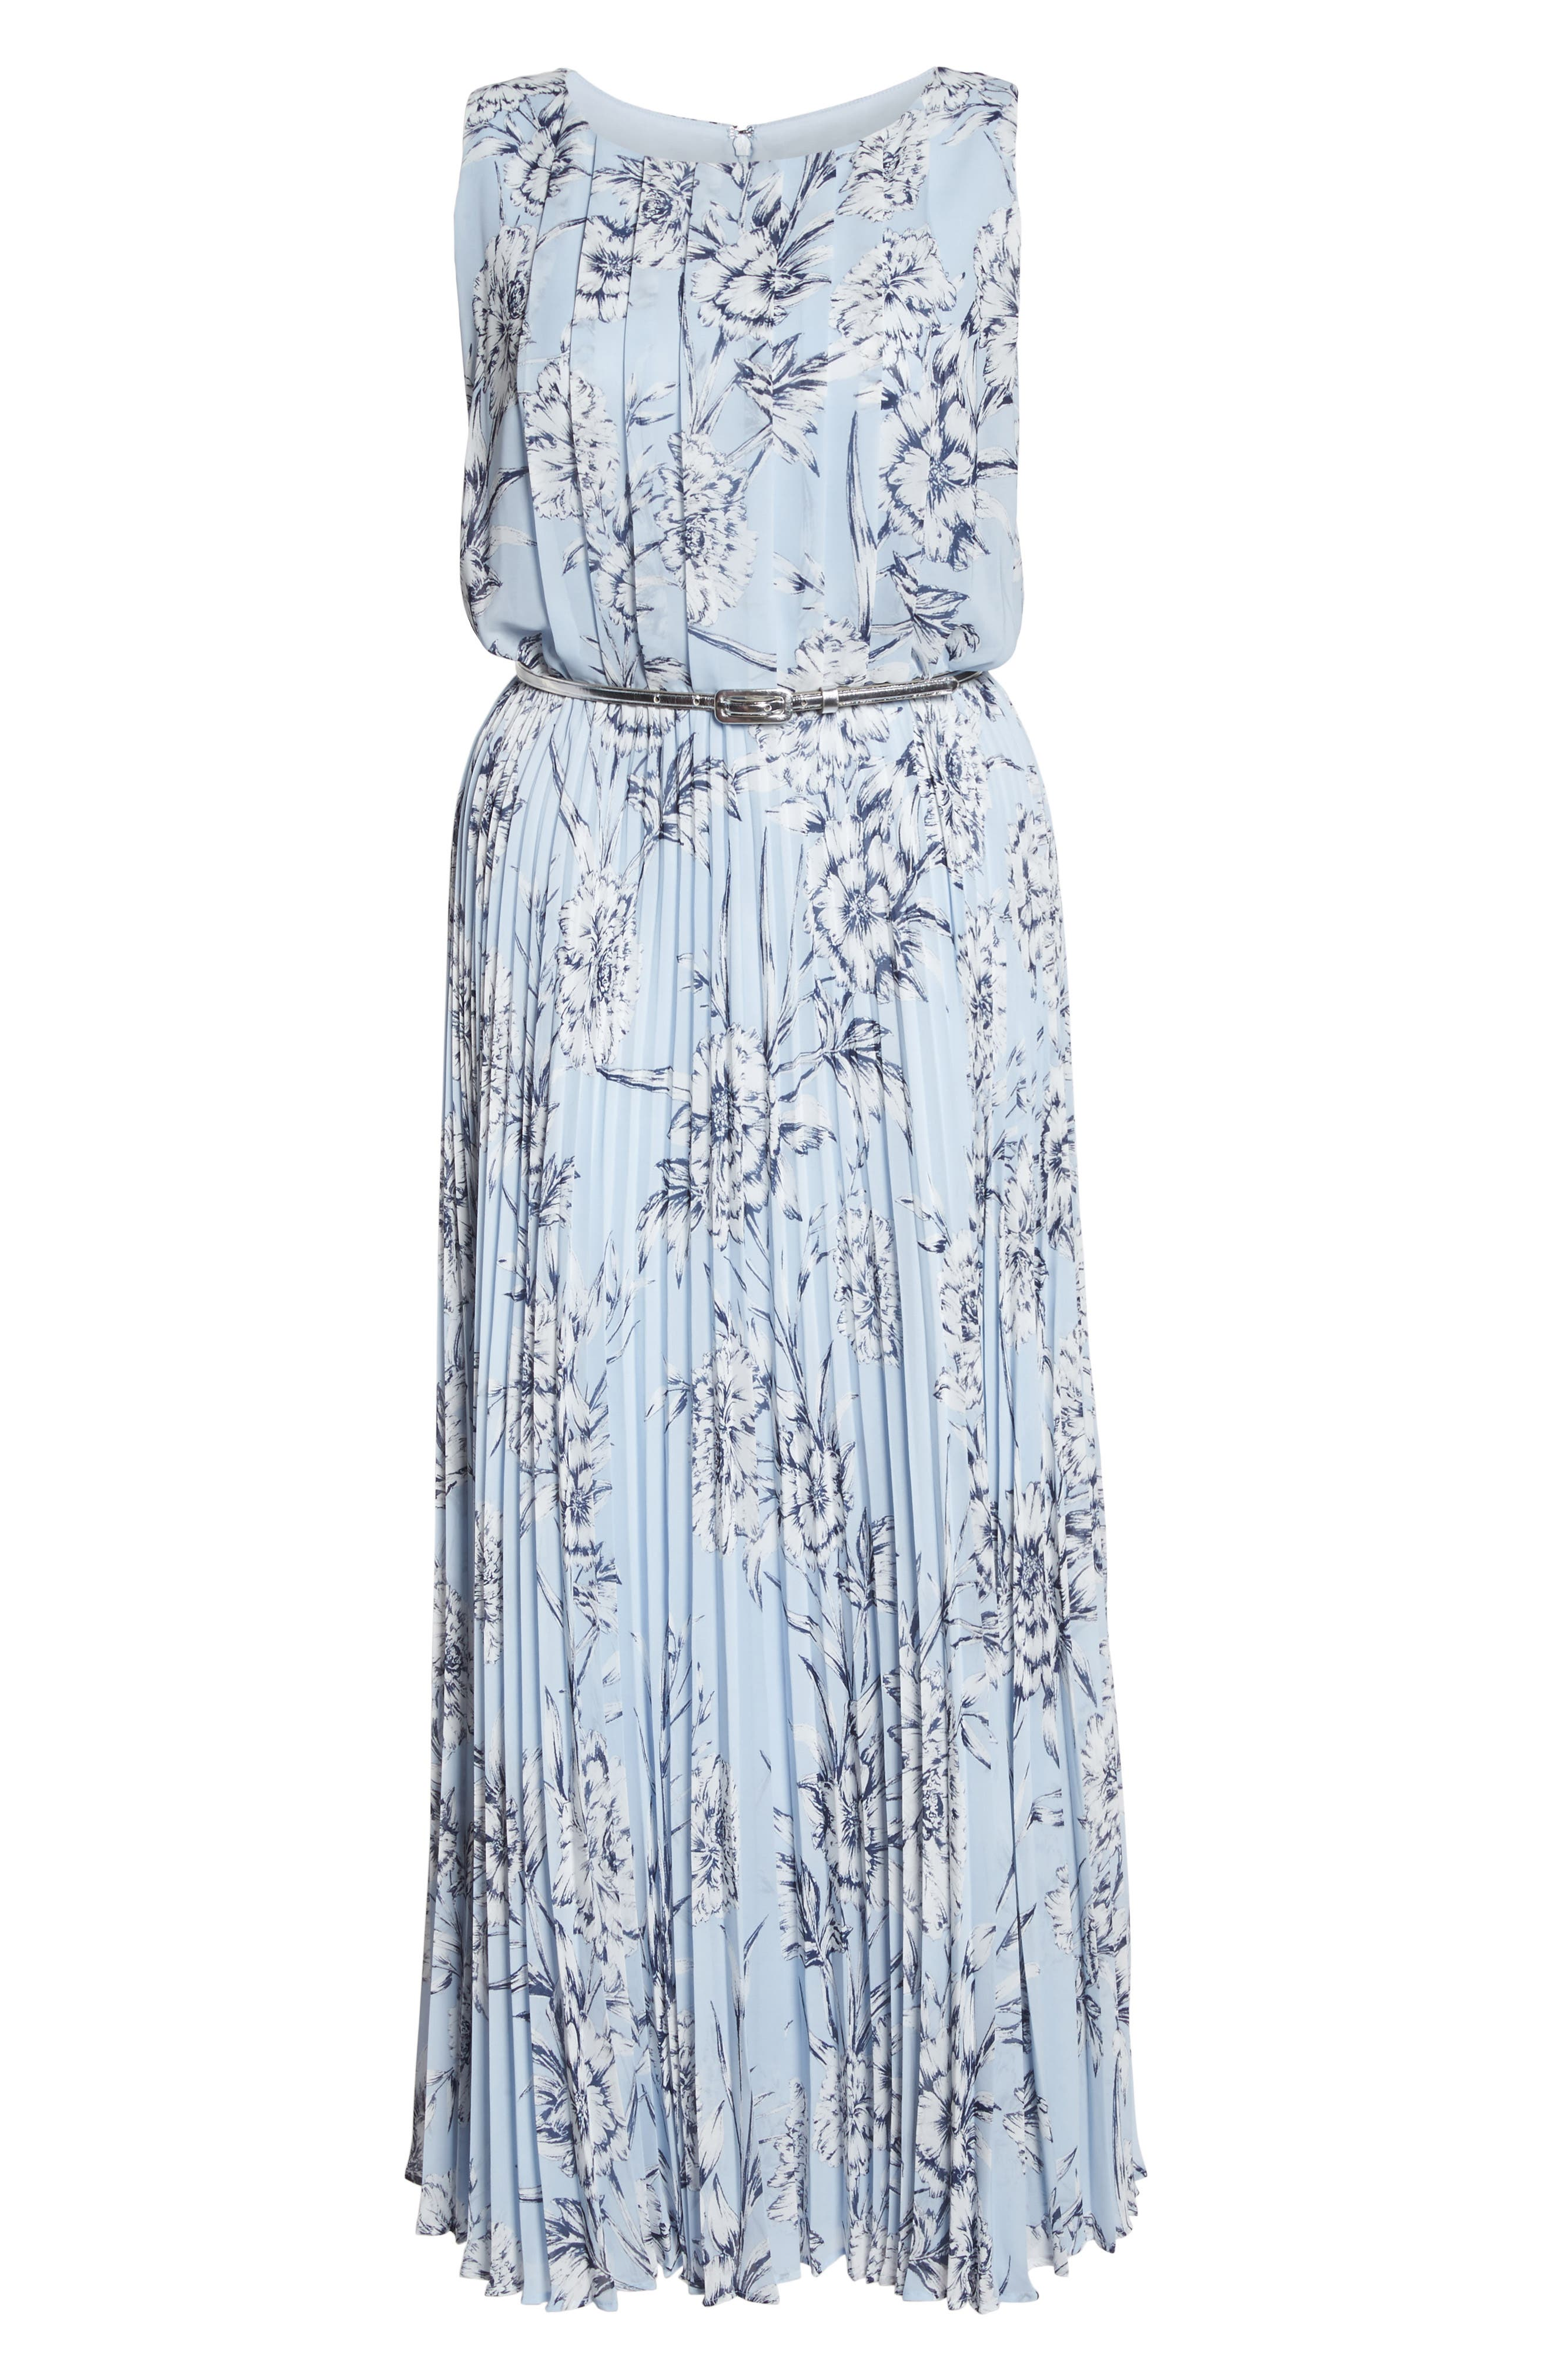 Belted Floral Maxi Dress,                             Alternate thumbnail 6, color,                             421